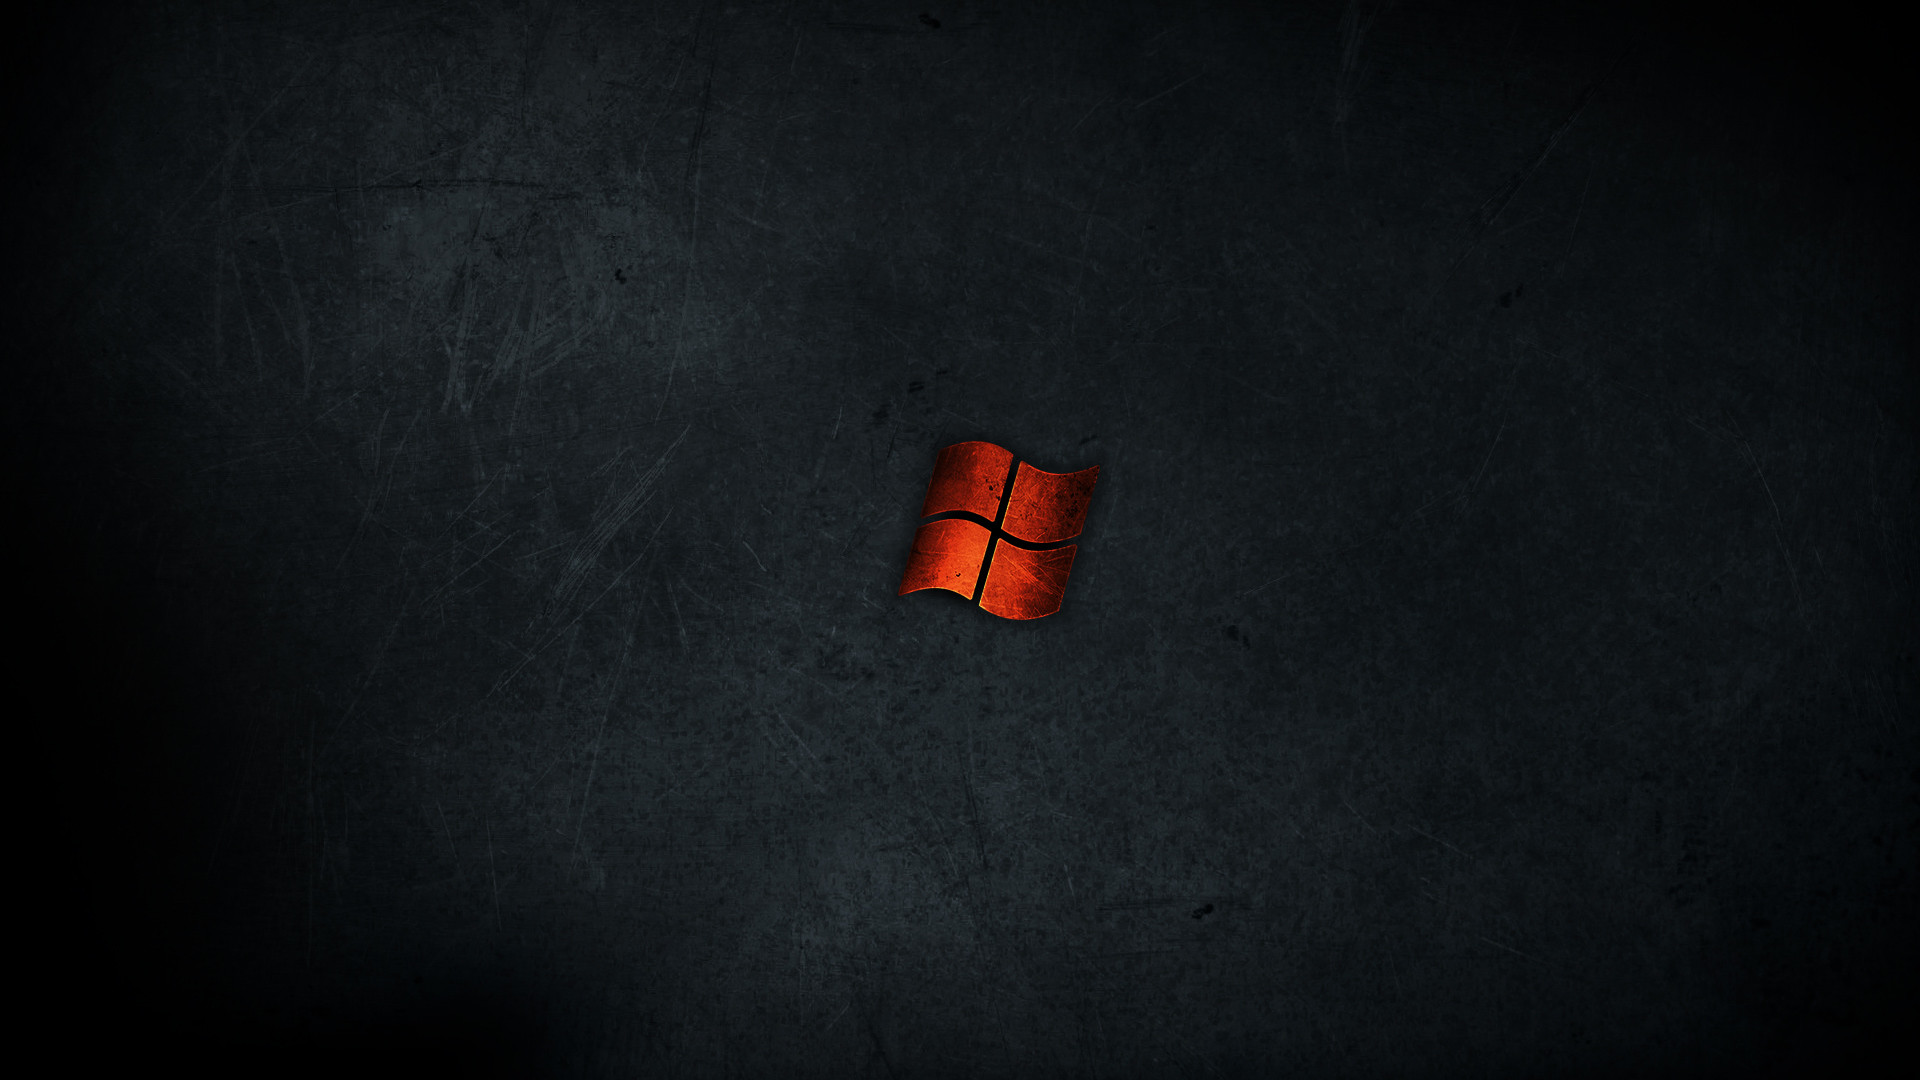 Res: 1920x1080, Windows Metal Wallpaper by malkowitch Windows Metal Wallpaper by malkowitch